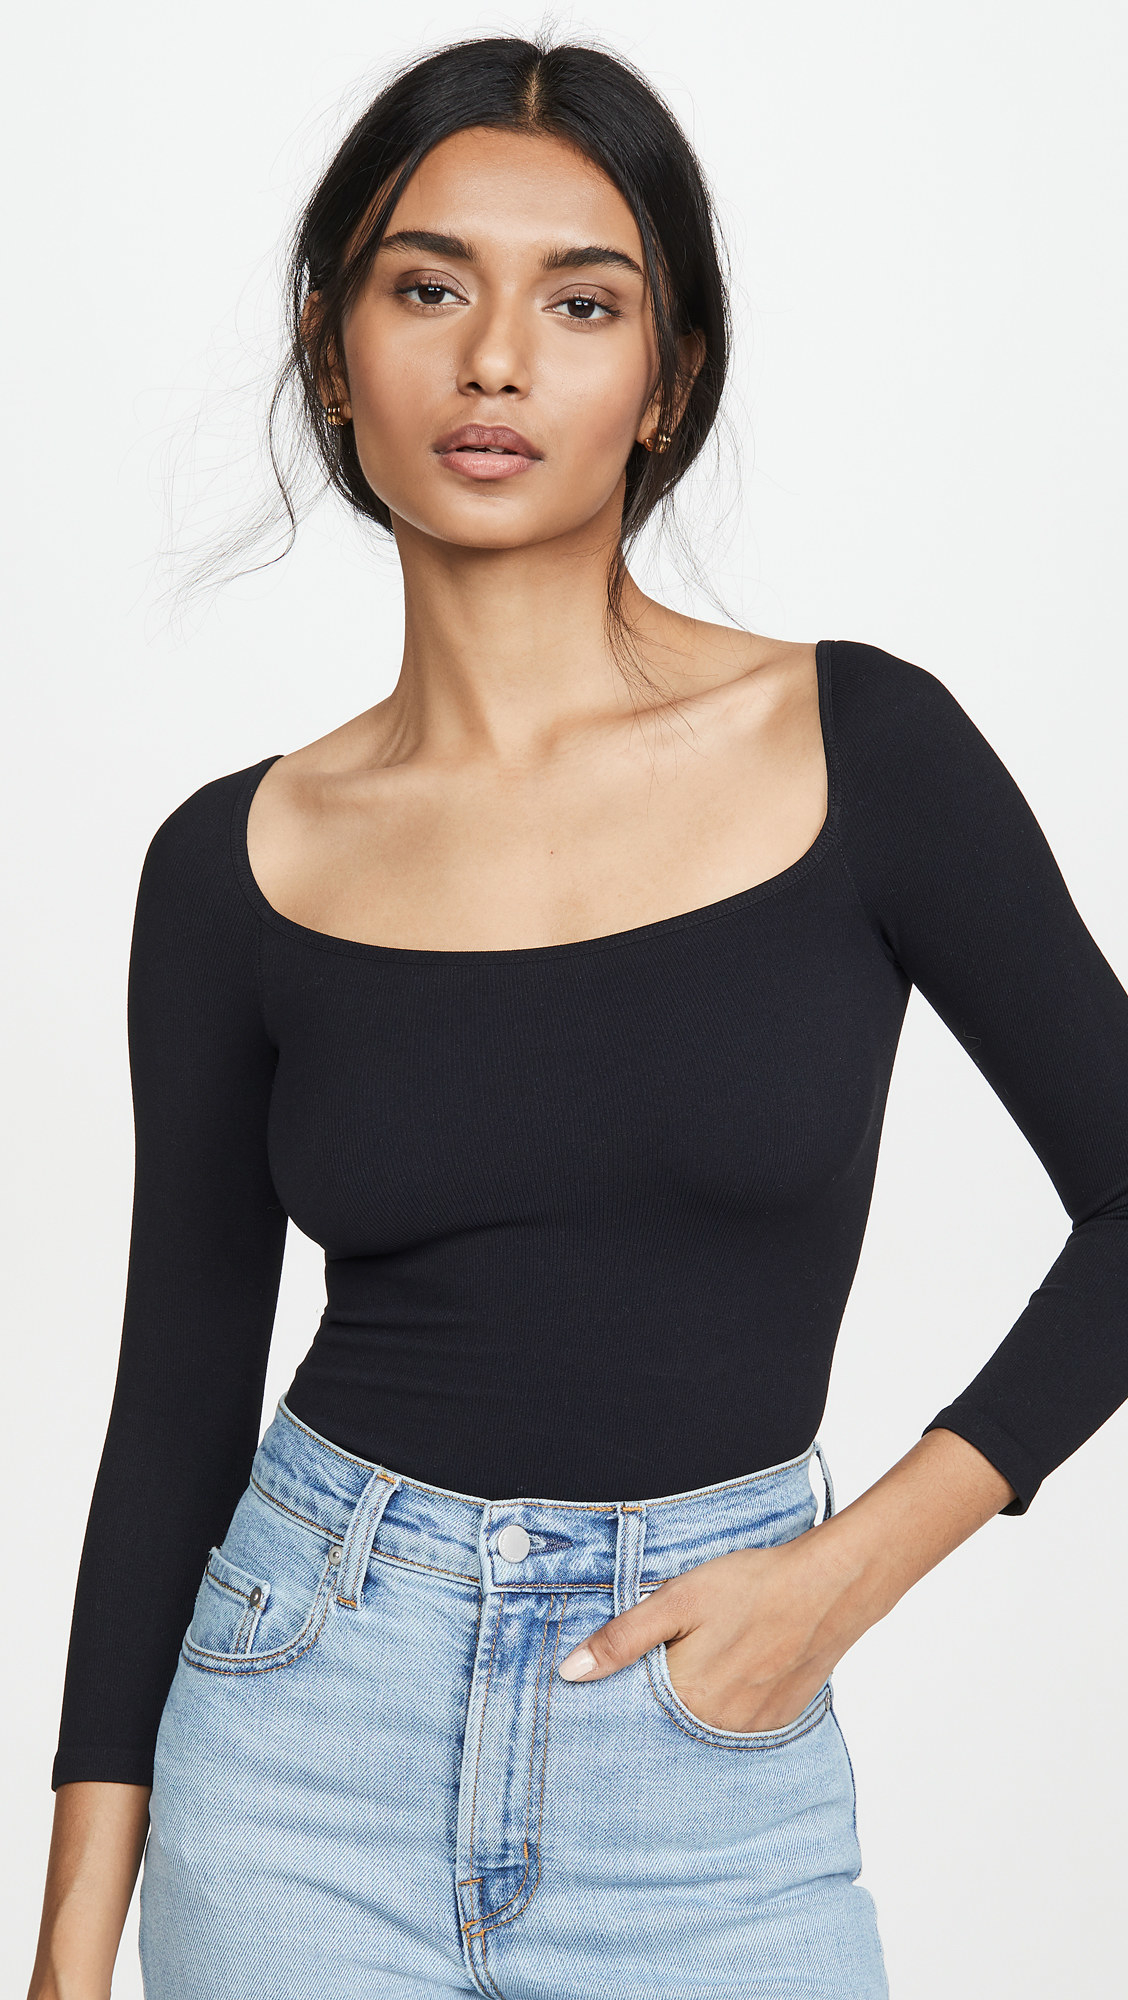 Model wearing top tucked into a pair of jeans